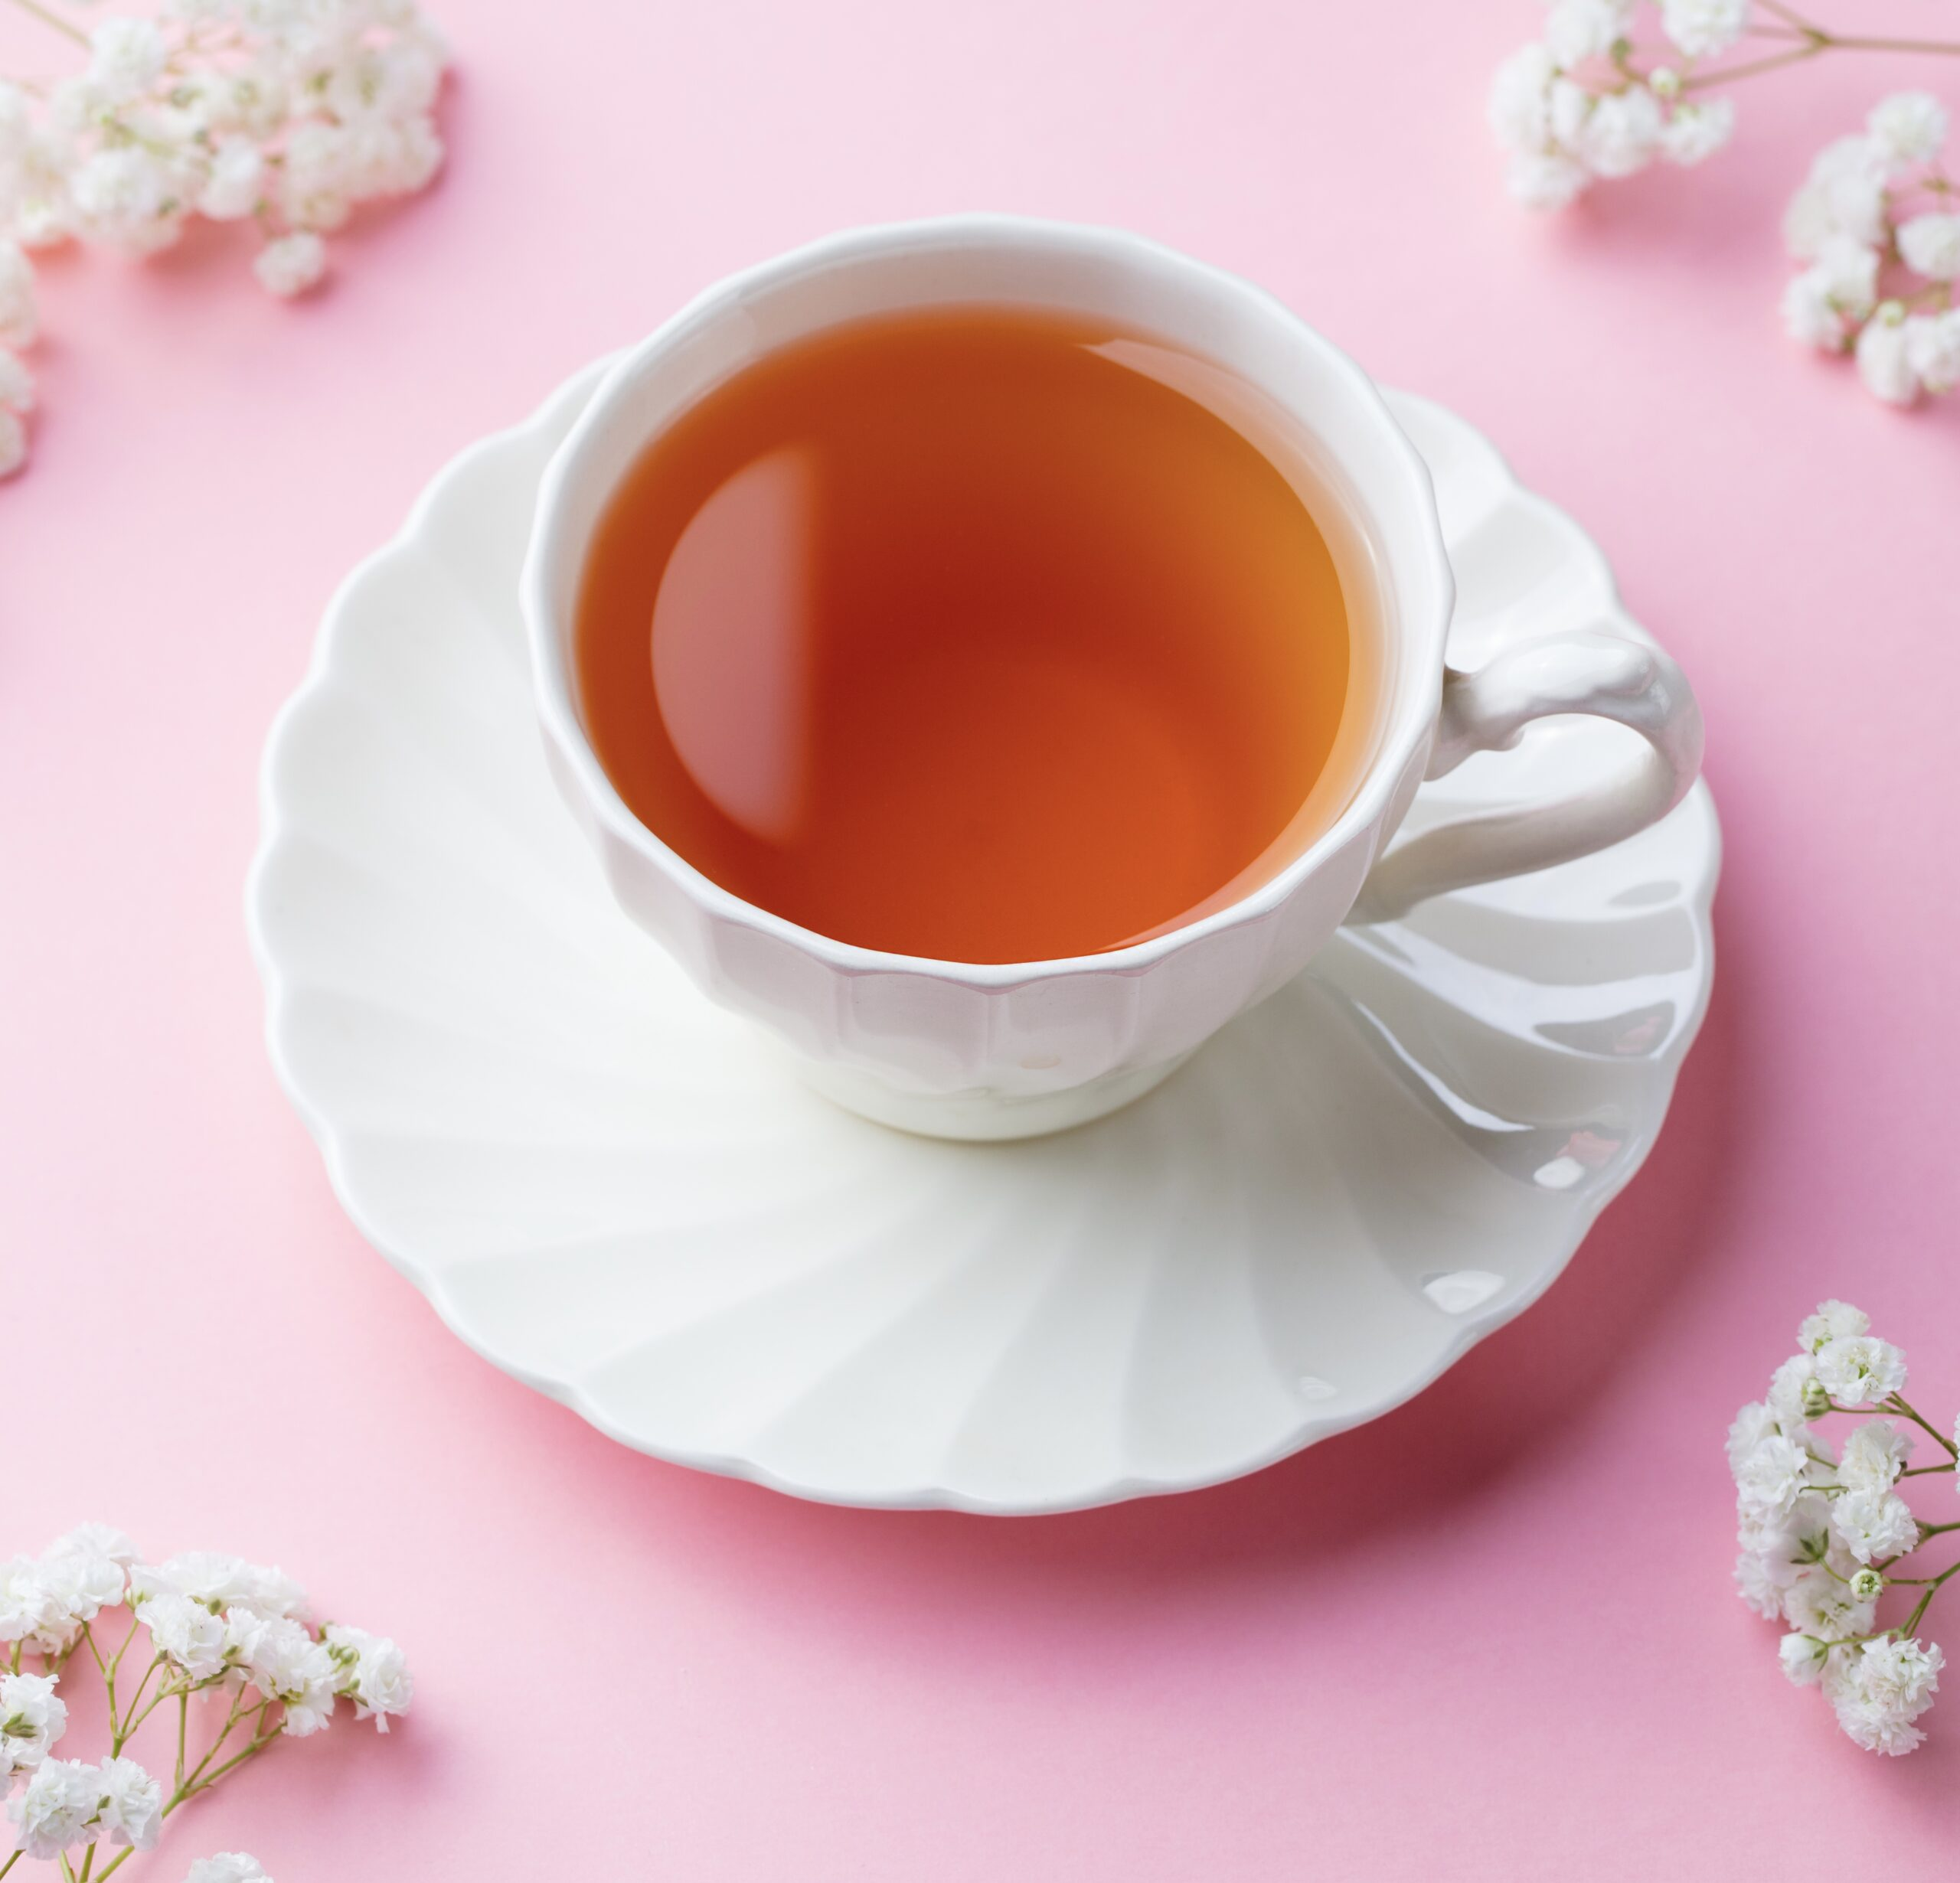 9 Fun Facts About Tea That May Suprise You!